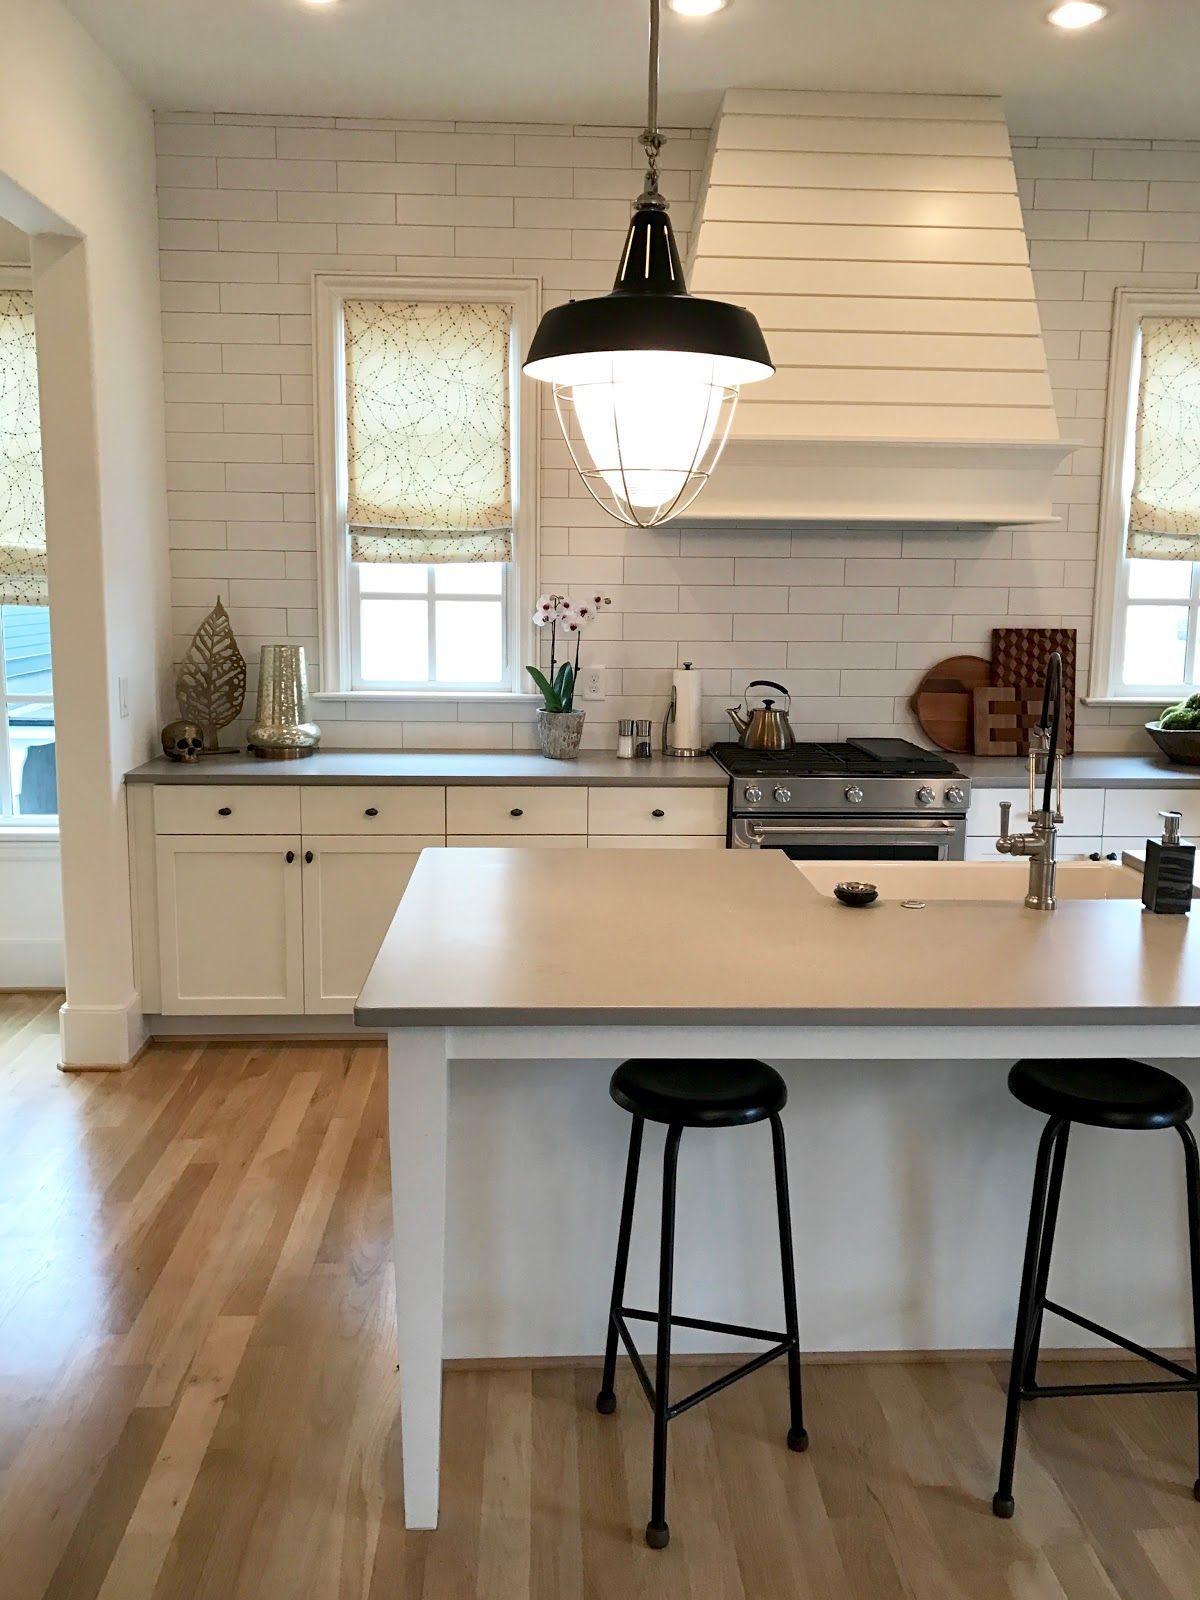 White cabinets, gray counters, tucked in stools